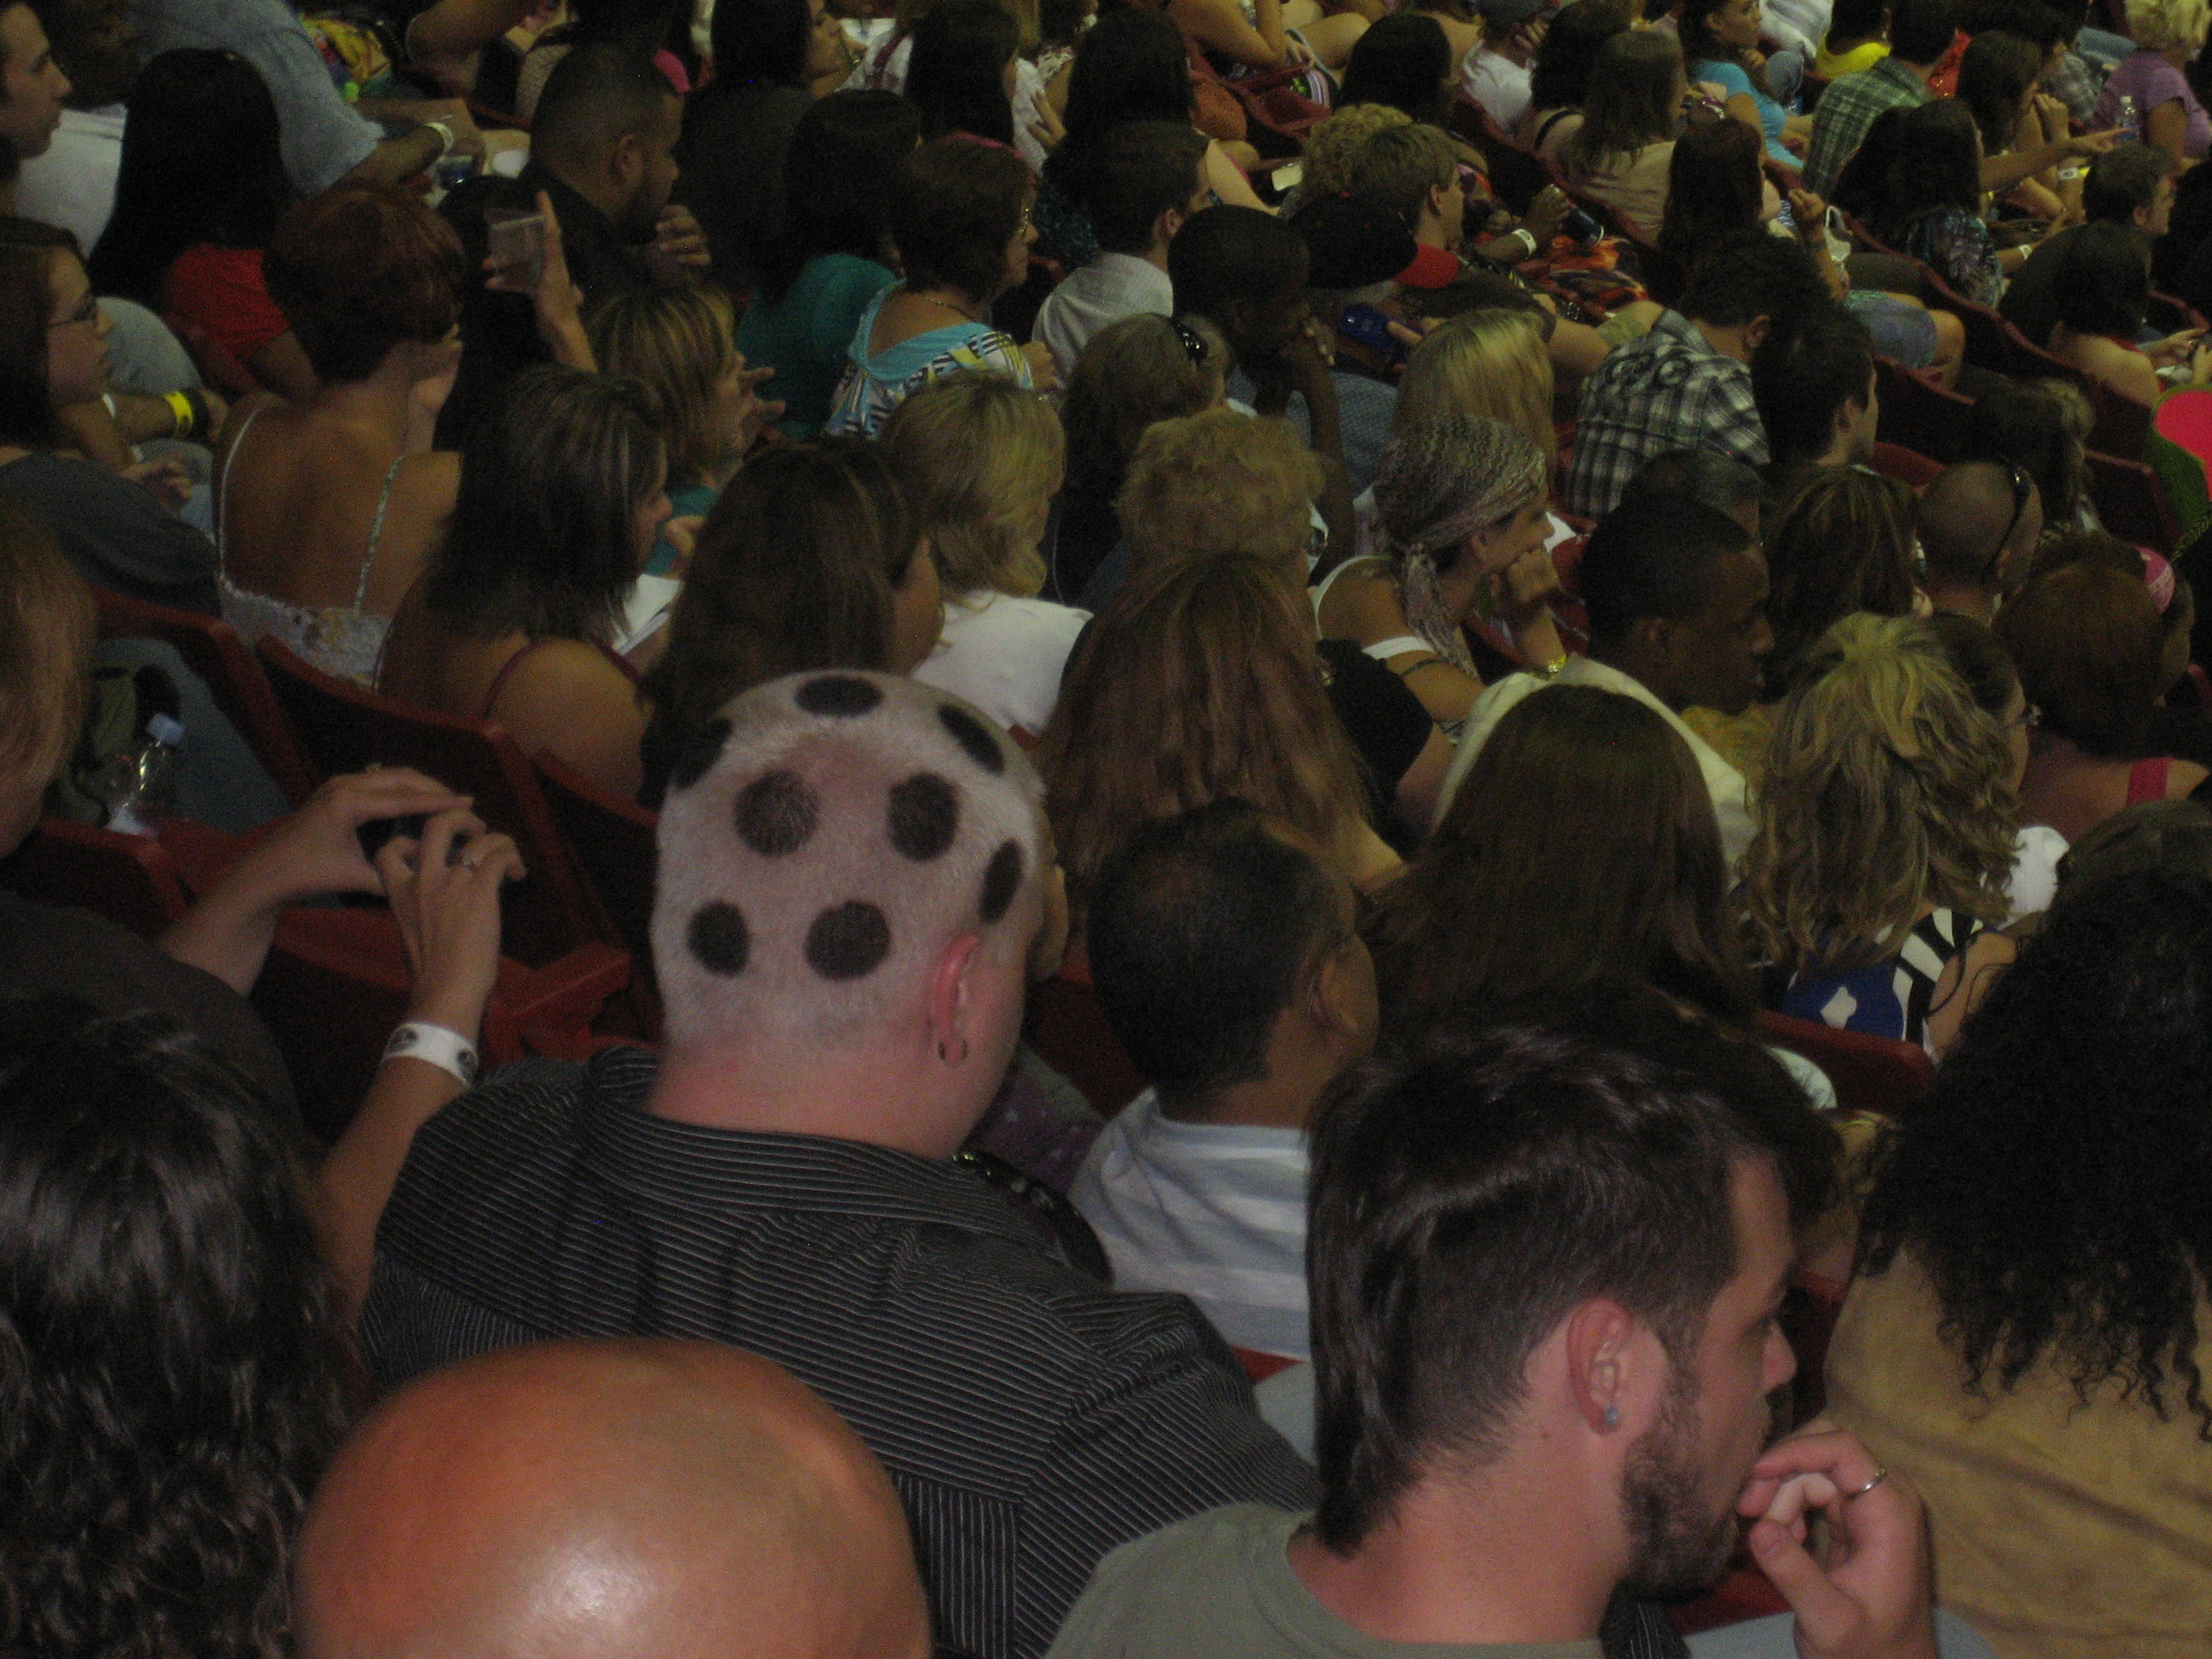 Polka dot head ranked amongst the attention-cravers (Day 3 pic)